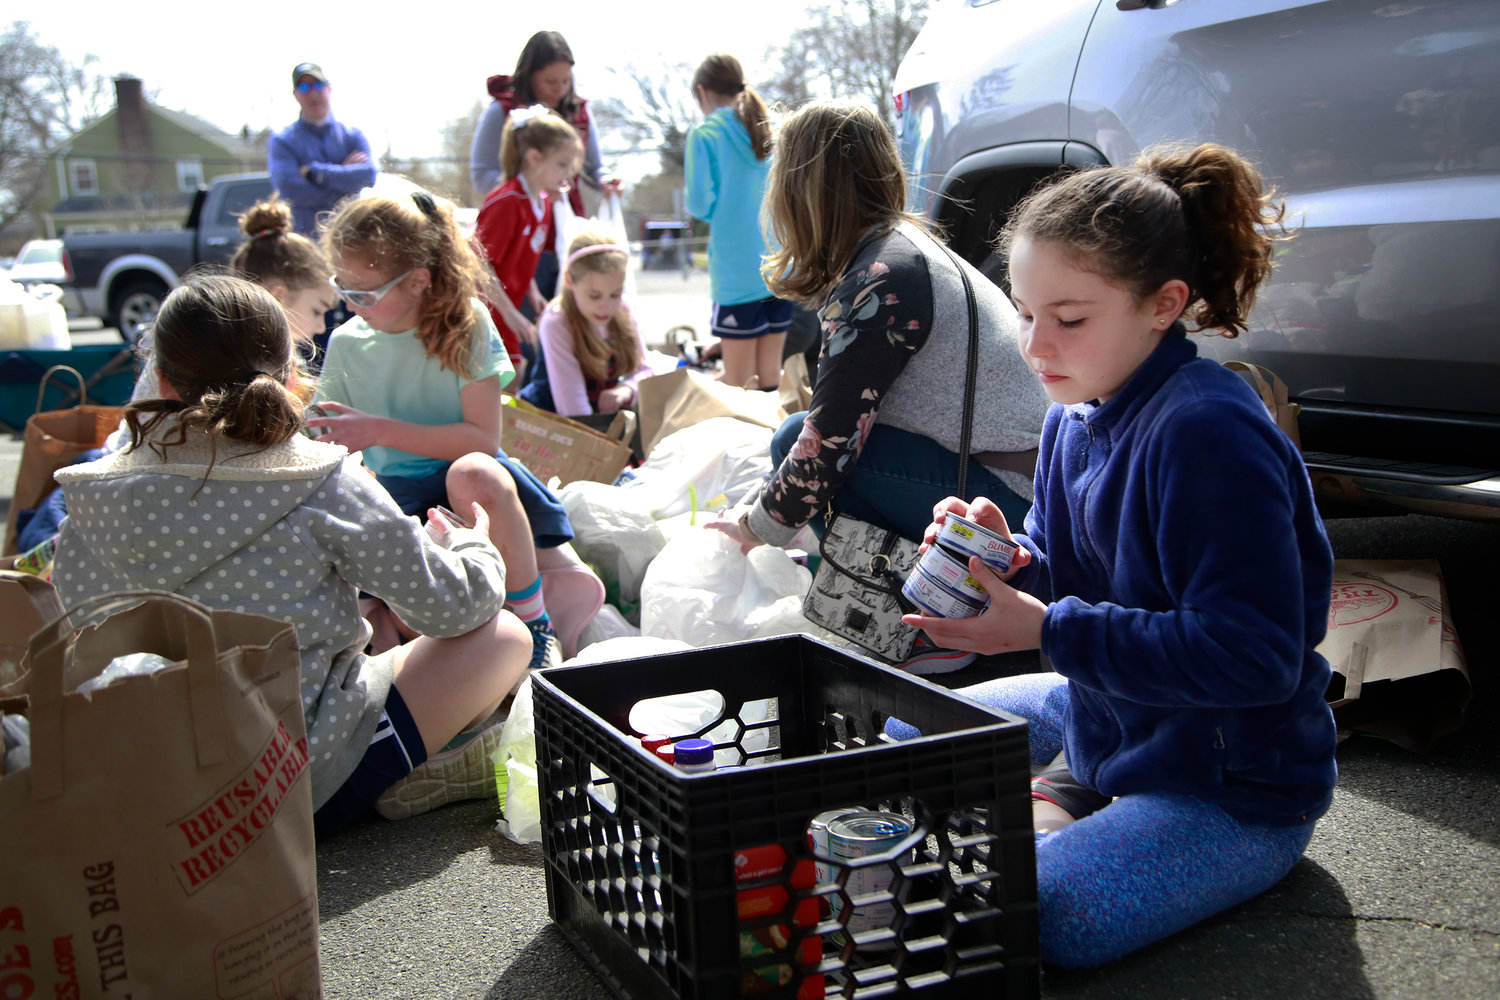 Fourth grader Grace Adler helped organize items for her team, Friends in Need.